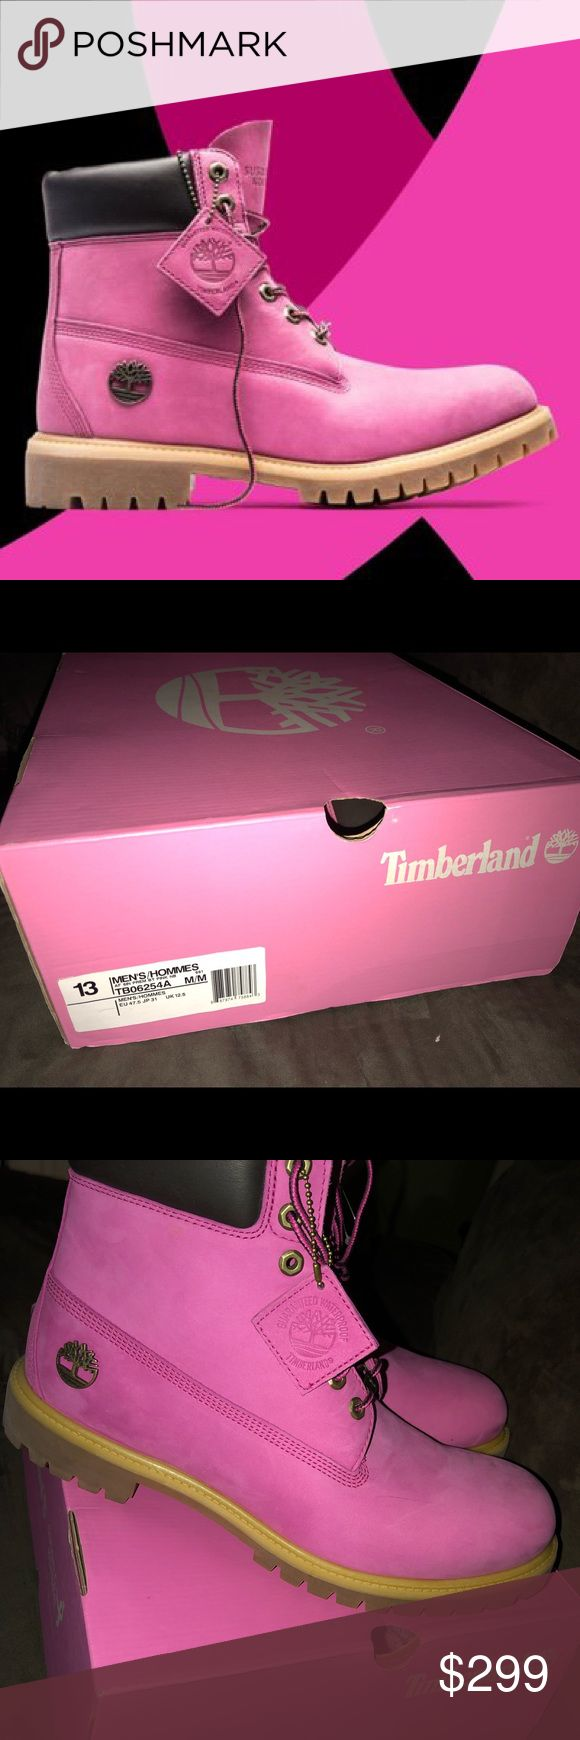 "Men's Timberland Breast Cancer Pink Lim. Edition Timberland 6"" Premium Susan G. Komen Breast Cancer Pink Lim. Edition  BRAND NEW IN BOX!! SIZE SOLD OUT EVERYWHERE!! 100% authentic Timberland. These are LIMITED EDITION Susan G. Komen for the fight against breast cancer. Size:13 Color: Pink Timberland Shoes Boots"